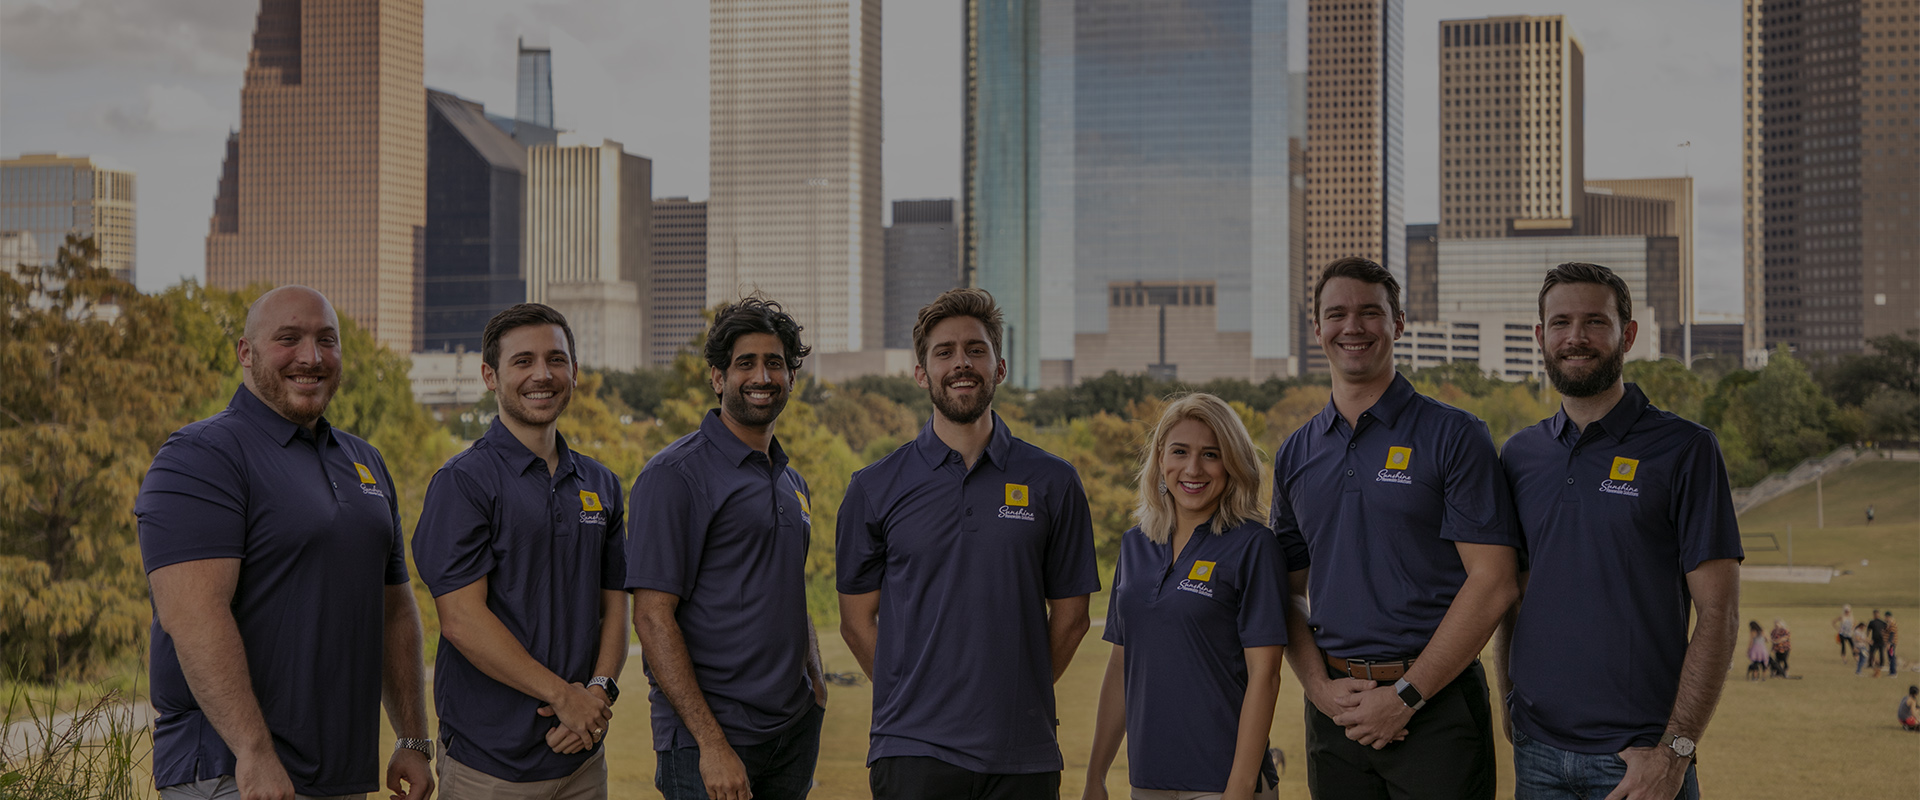 Meet our solar install team header image downtown houston team photo